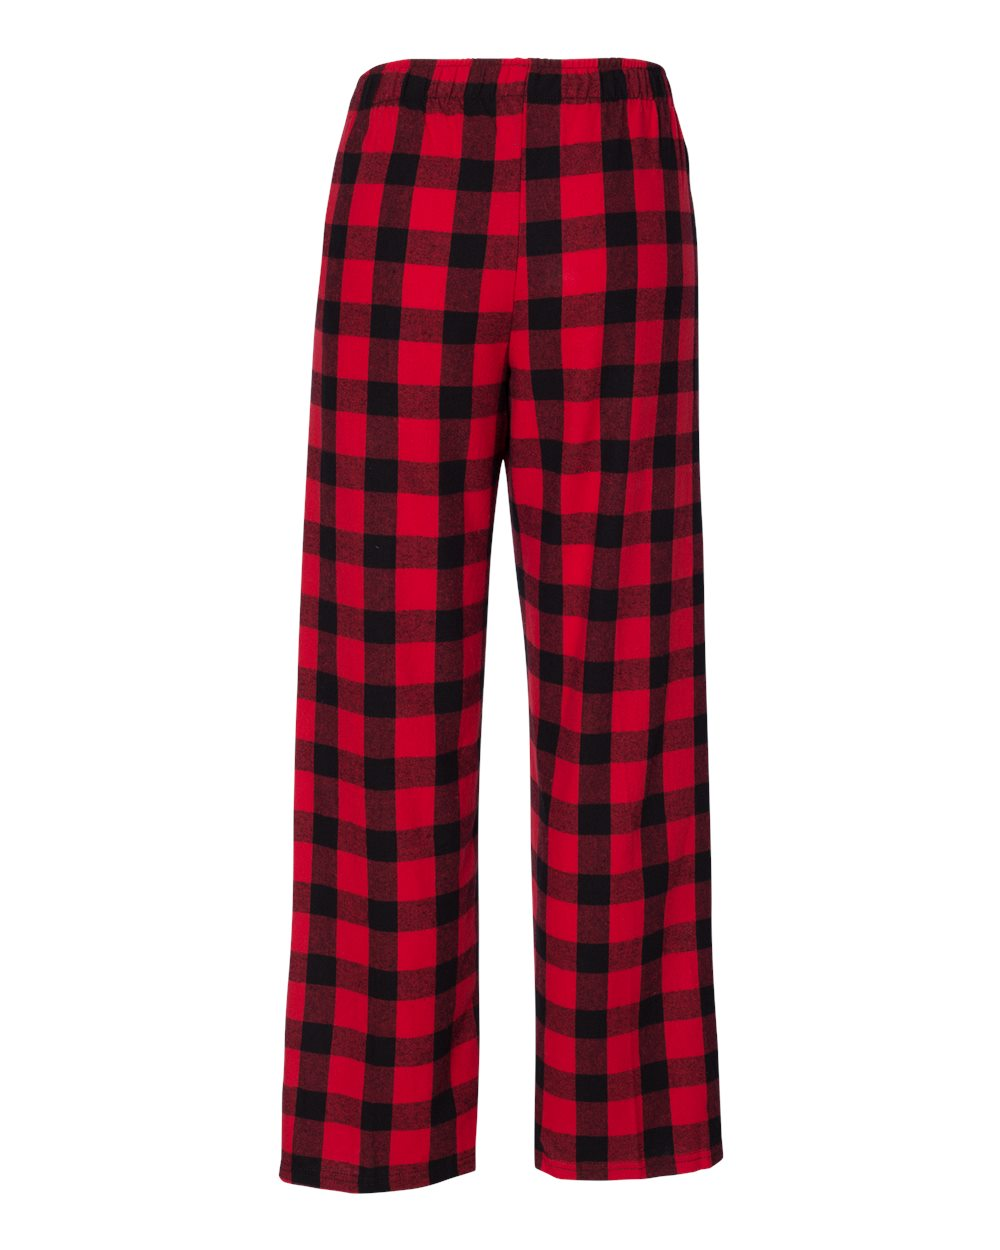 Mikayla Pants- Red